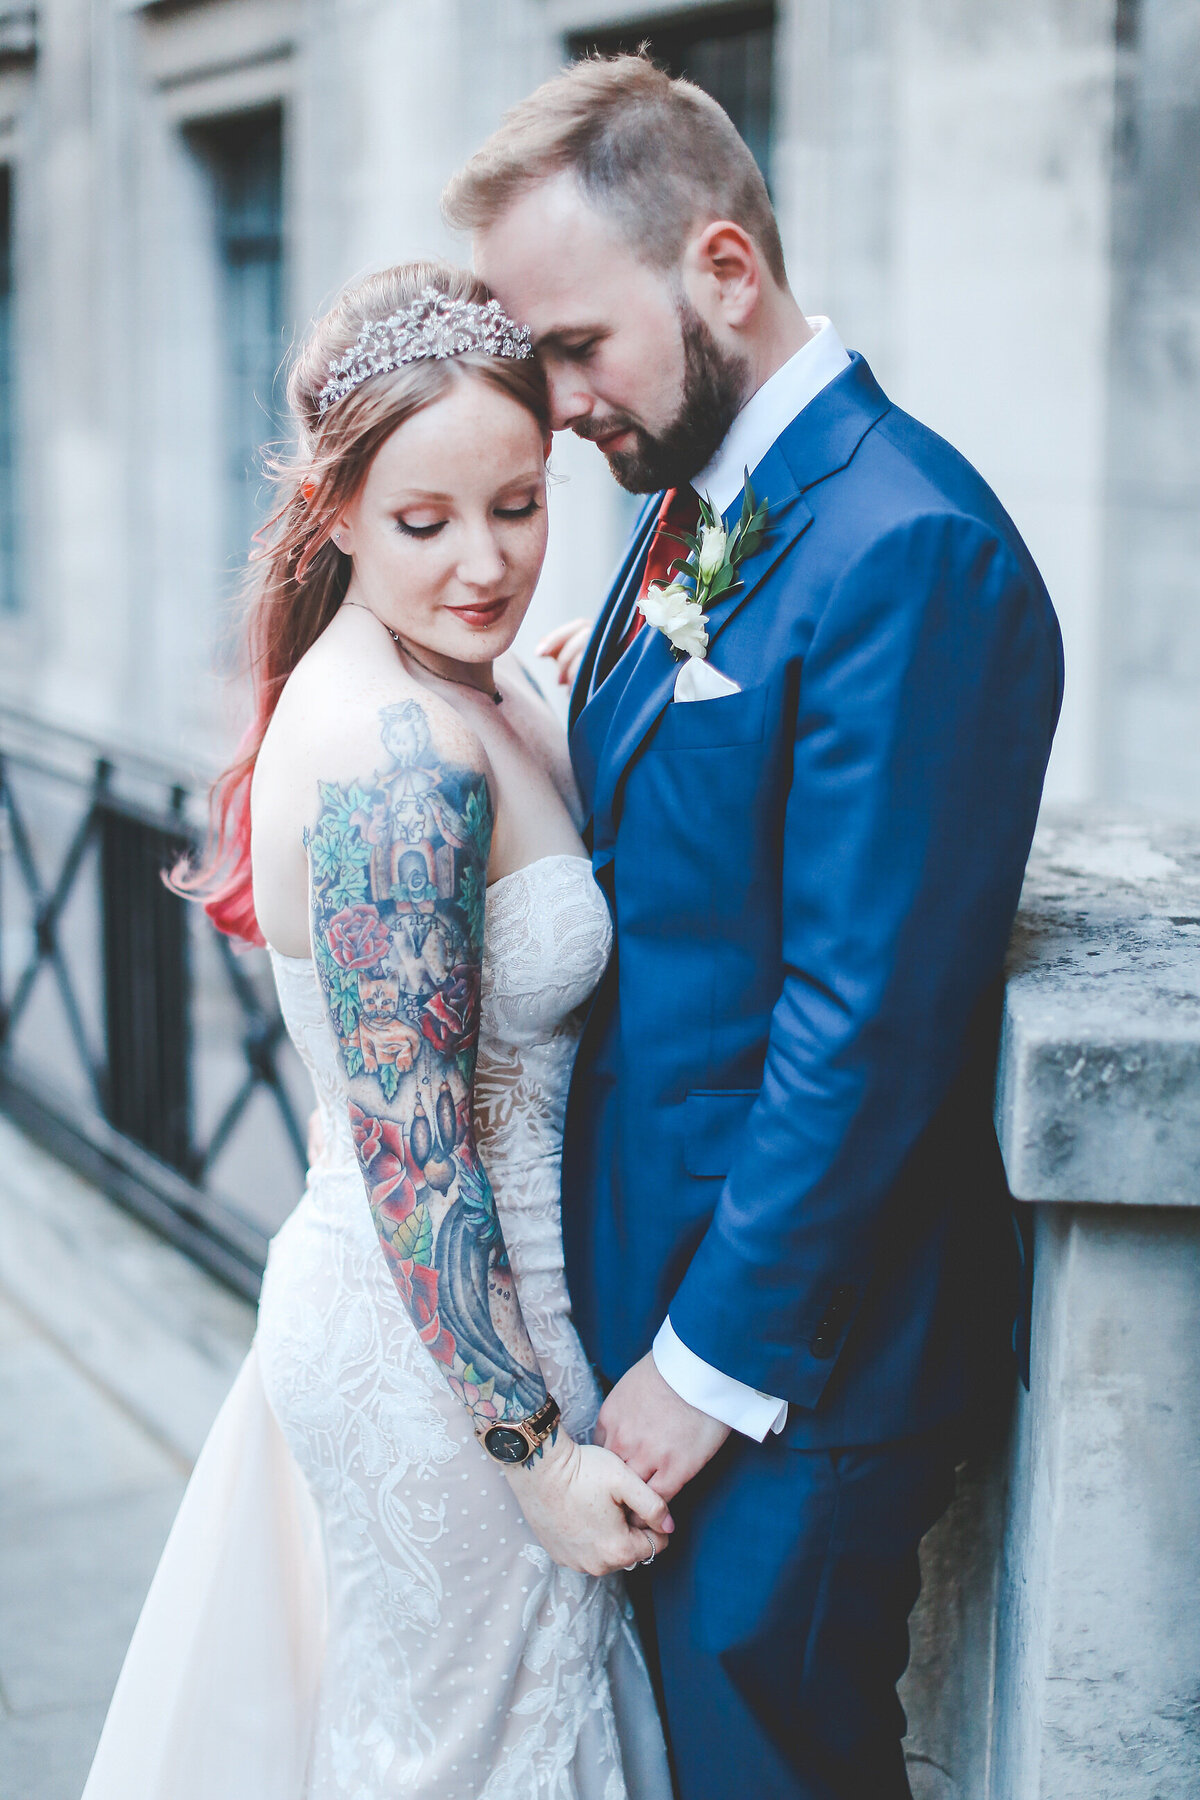 THE-YACHT-LONDON-WEDDING-BOAT-WINDY-TATOO-BRIDE-0080